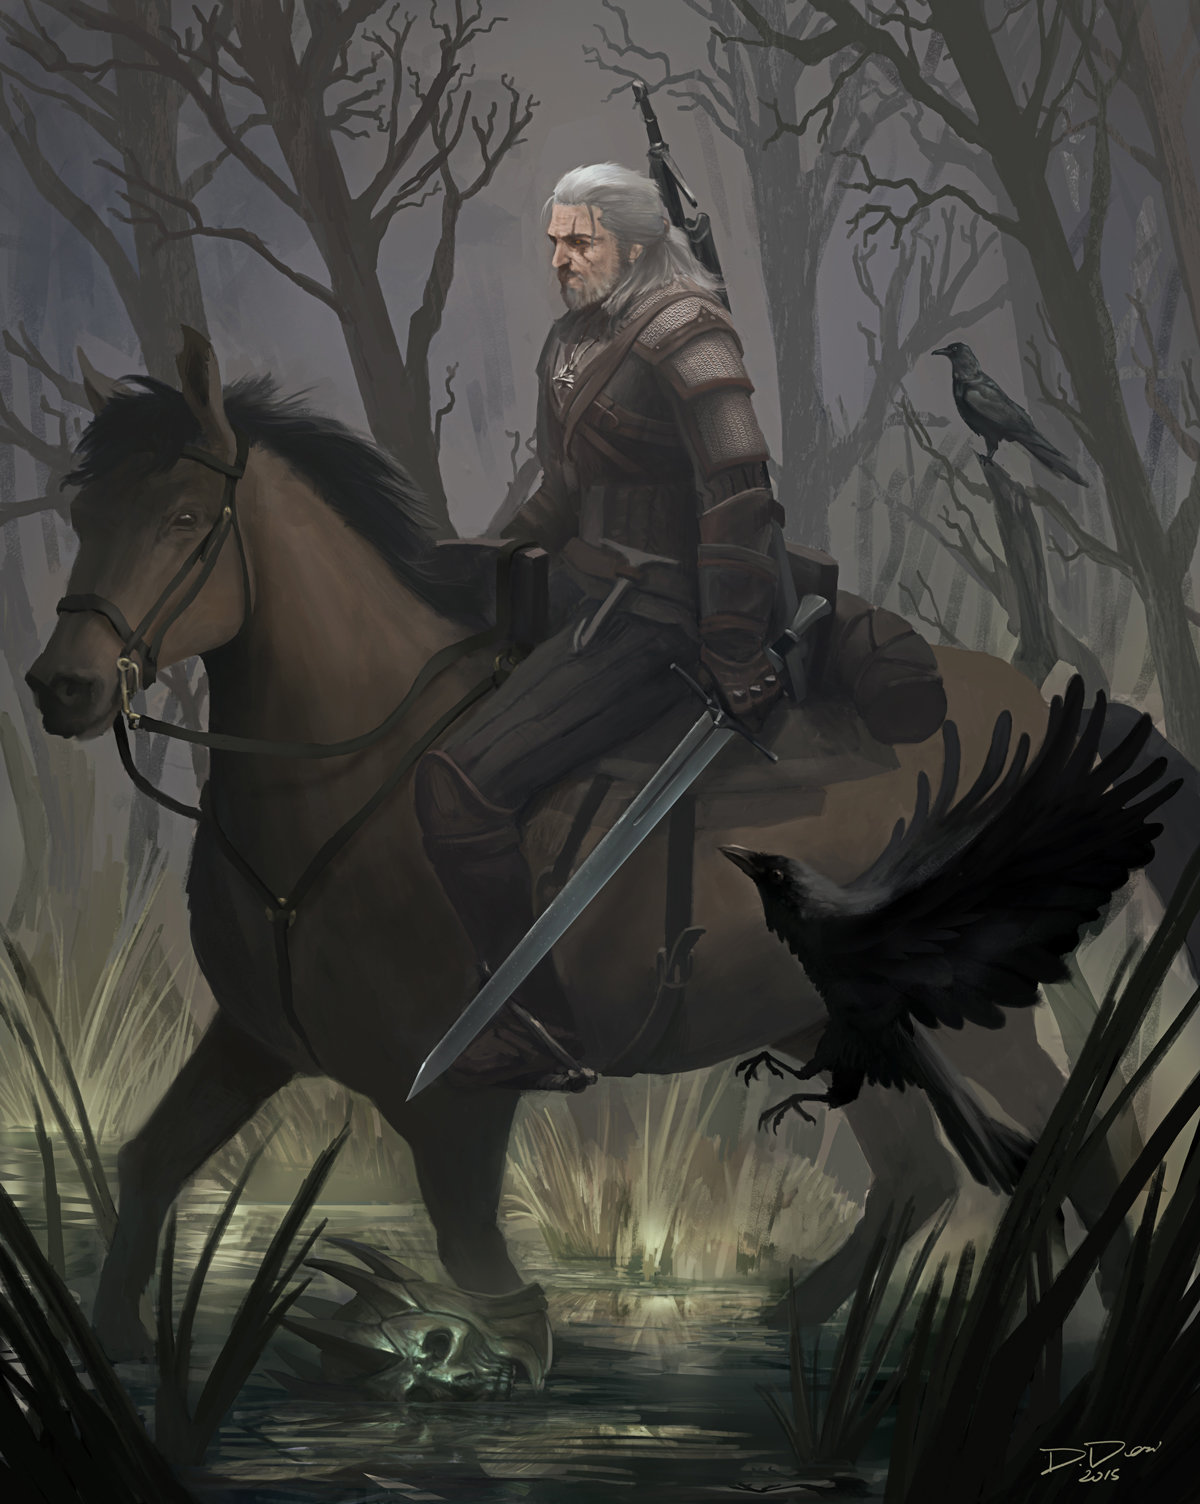 the witcher, the witcher 3, the witcher 3 wild hunt, douglas deri, deri, illustration, ilustracao, tw3, conceptart, ps4, geralt de rivia, art contest, how to paint, photoshop brushes, brushes, how to draw, como desenhar,